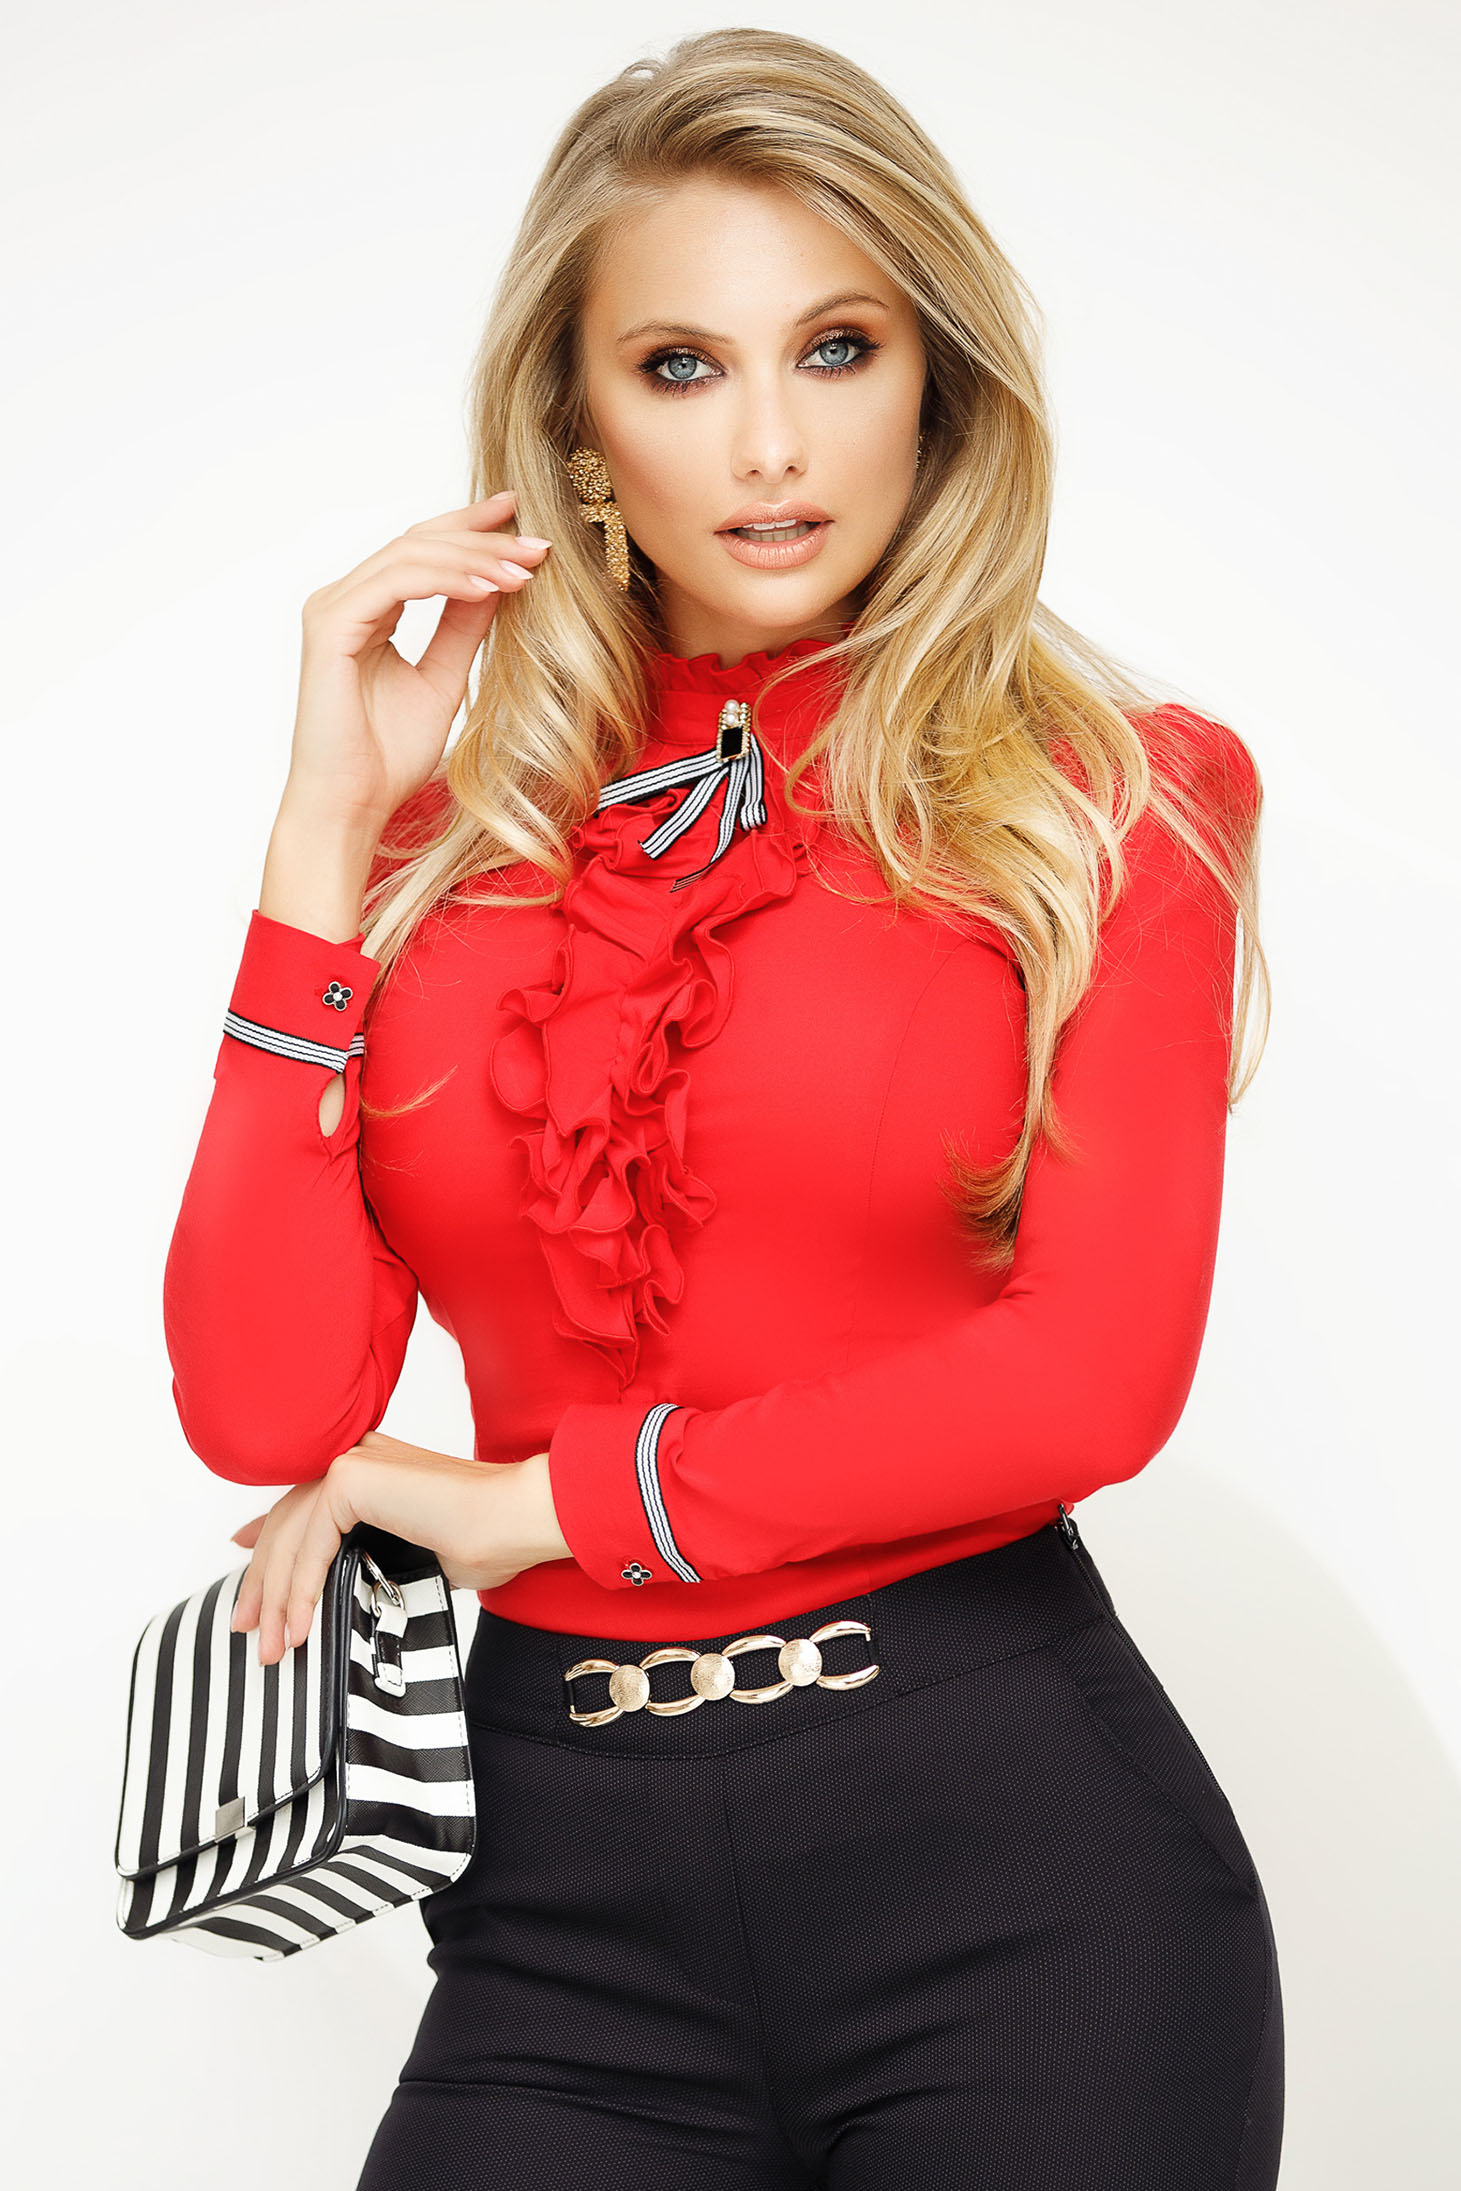 Women`s shirt red office with tented cut slightly elastic cotton ruffled collar accessorized with breastpin